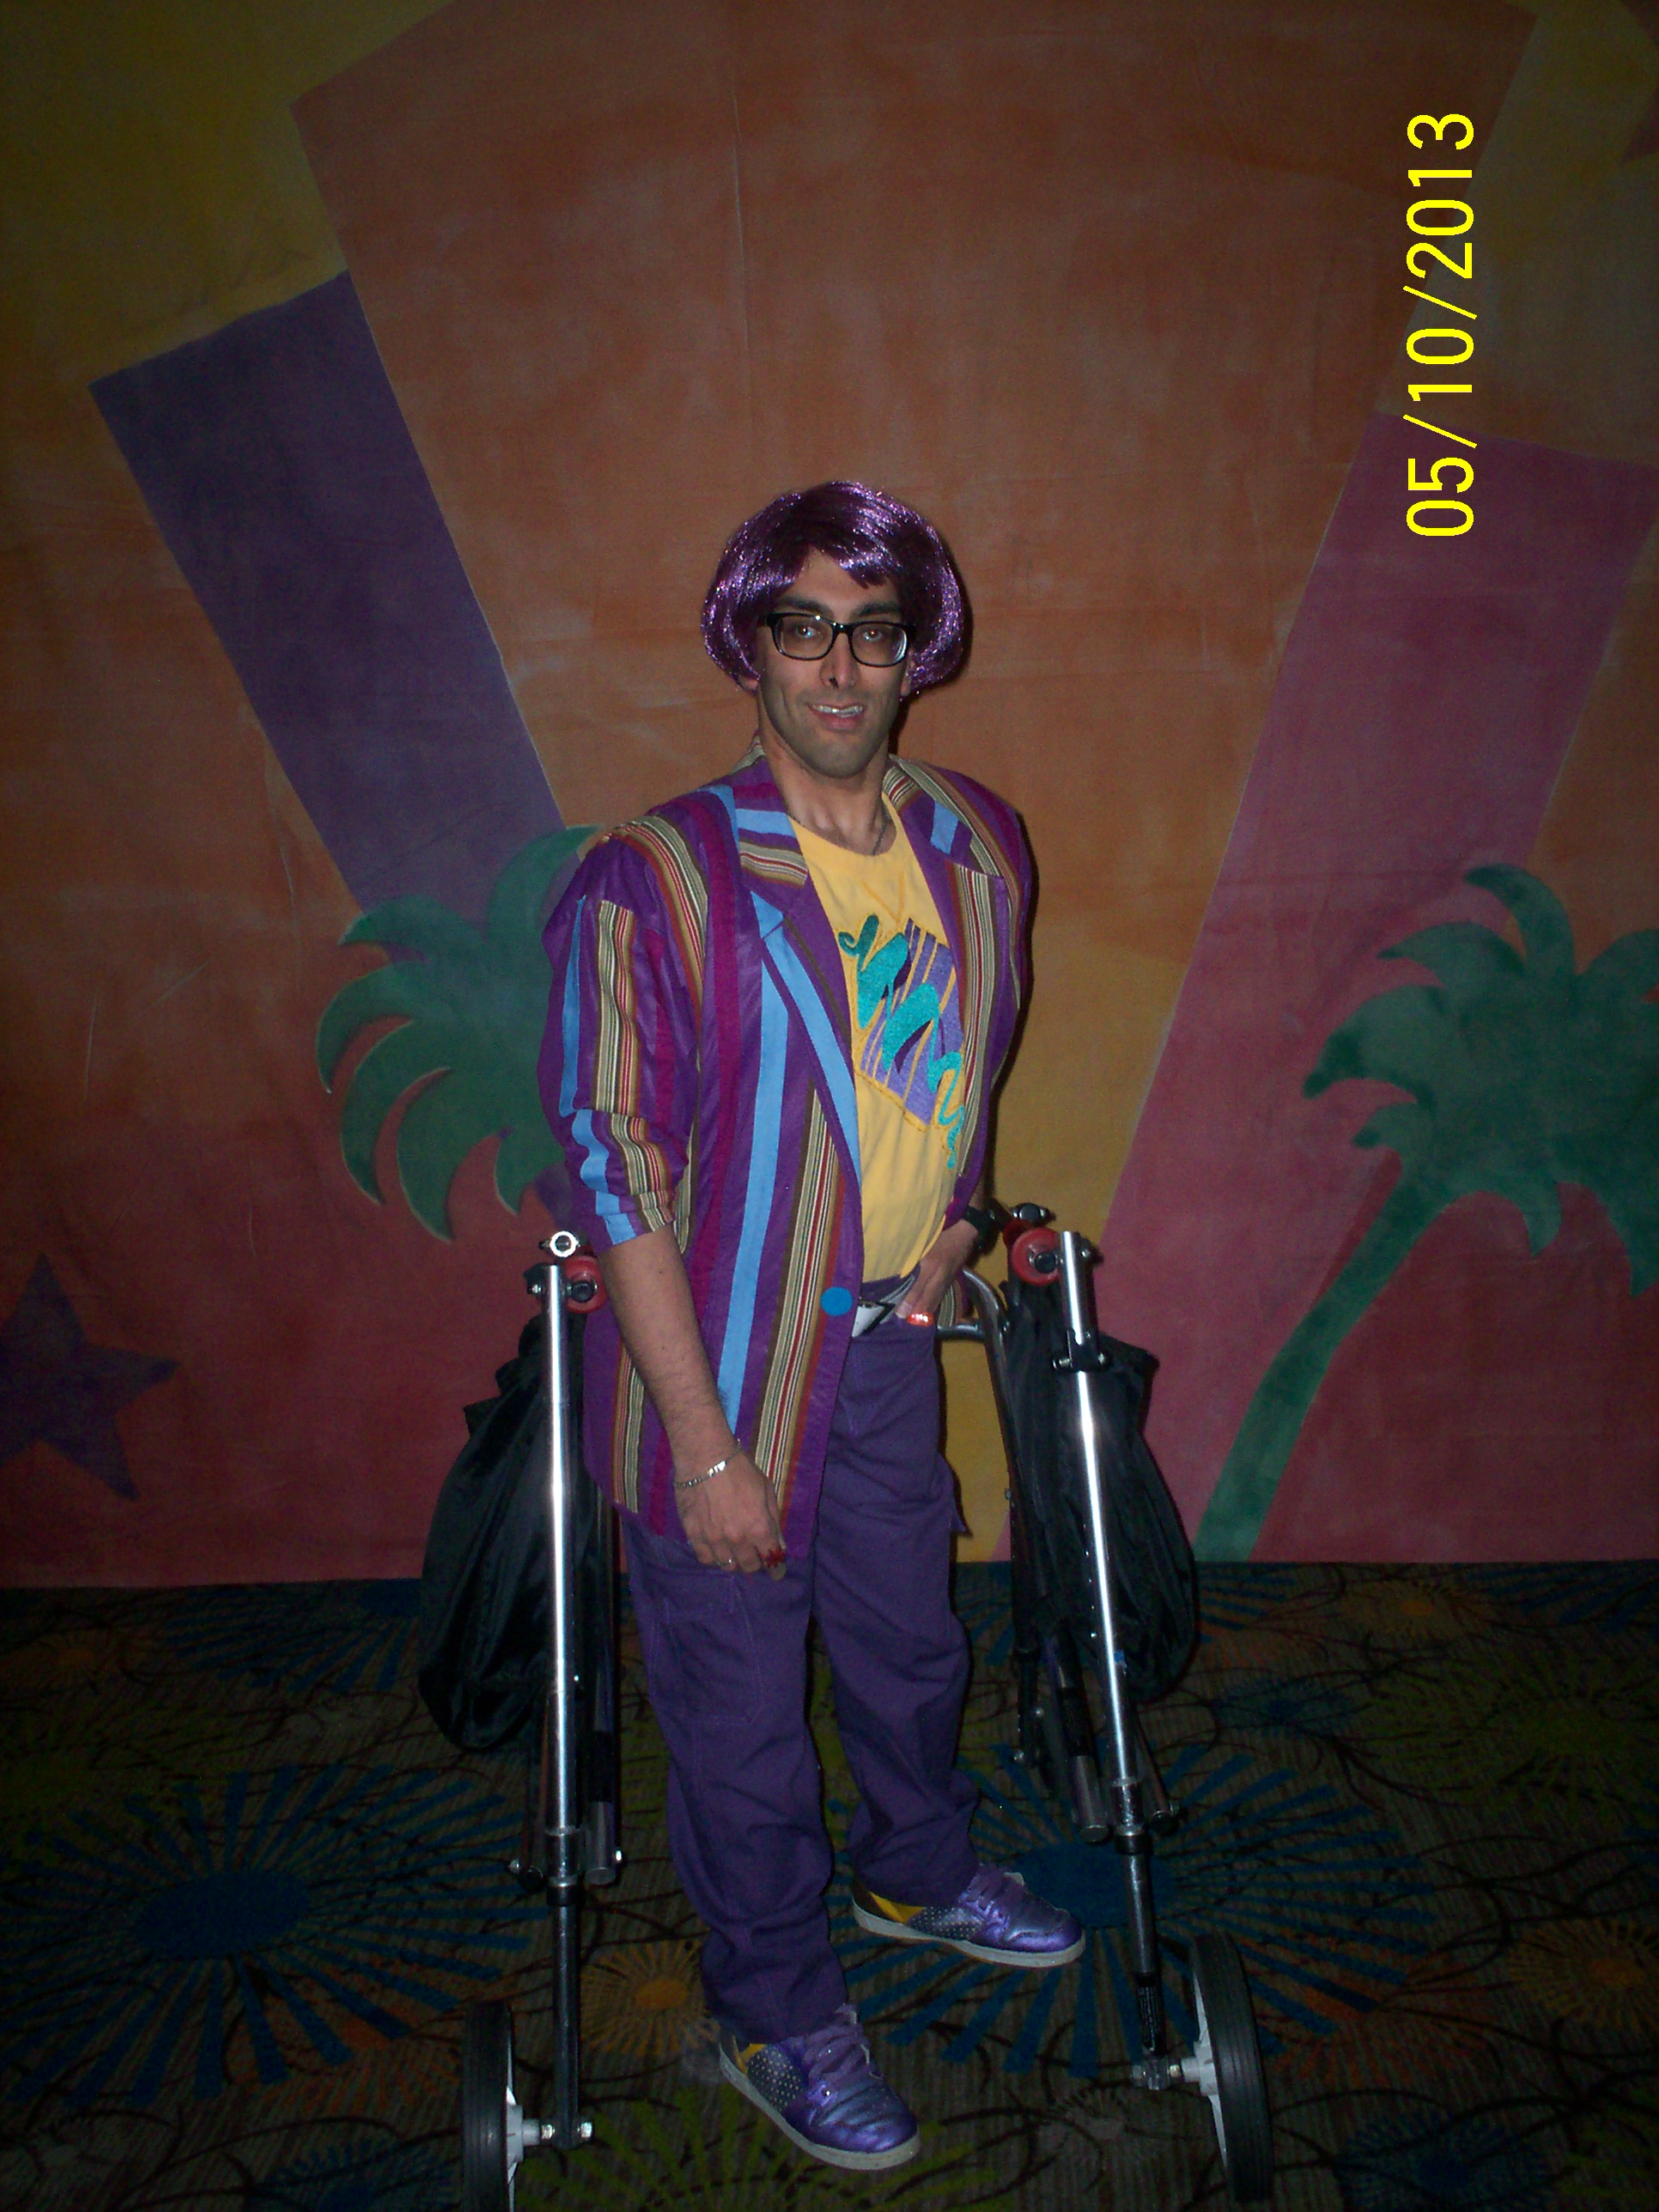 omar2 Glamour, Glitter, and Jemcon: The Truly Outrageous Fans of Jem and the Holograms Part 2